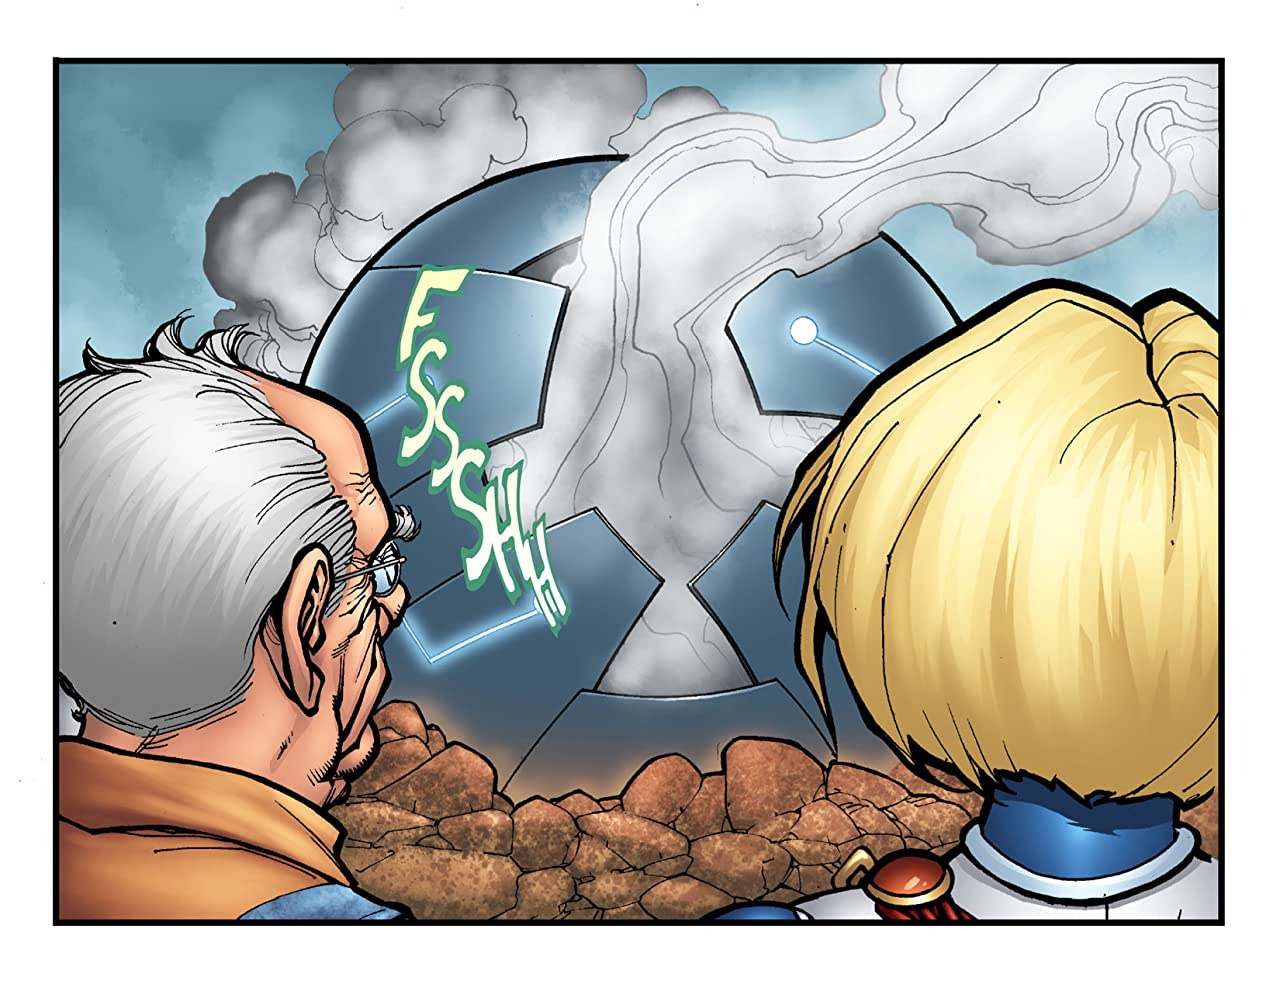 Ame-Comi IV: Power Girl #3